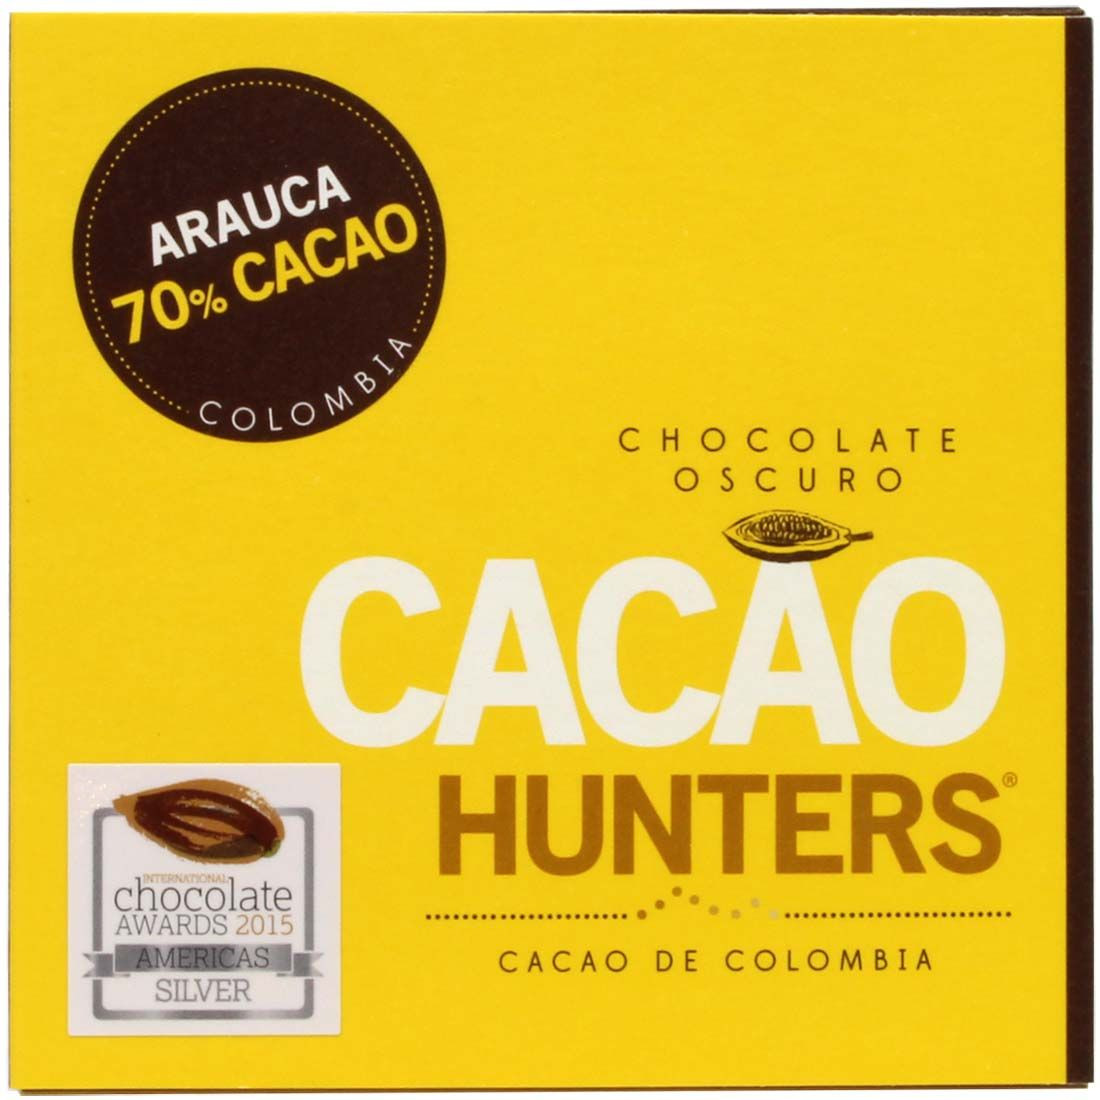 Cacao Hunters Arauca 70% Colombia - Barras de chocolate, Colombia, chocolate colombiano - Chocolats-De-Luxe